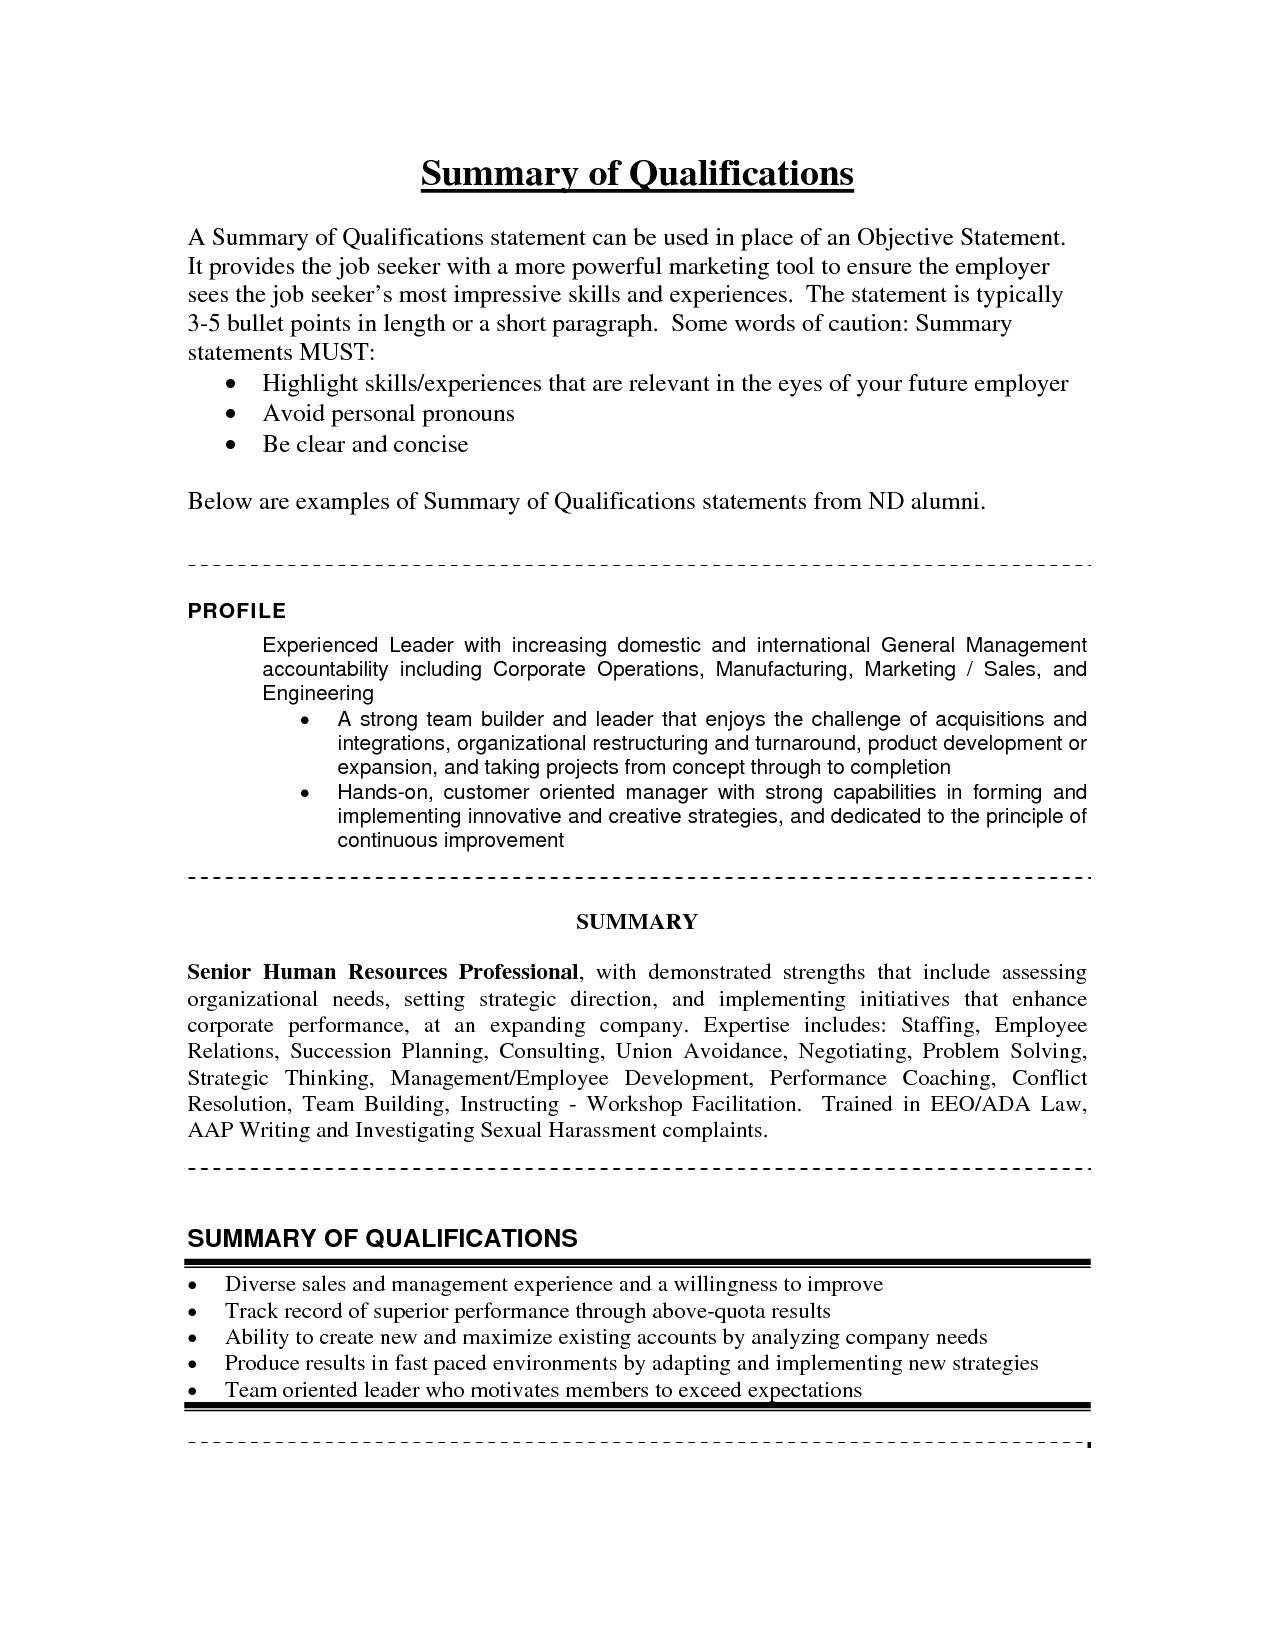 summary of qualifications sample resume accounting